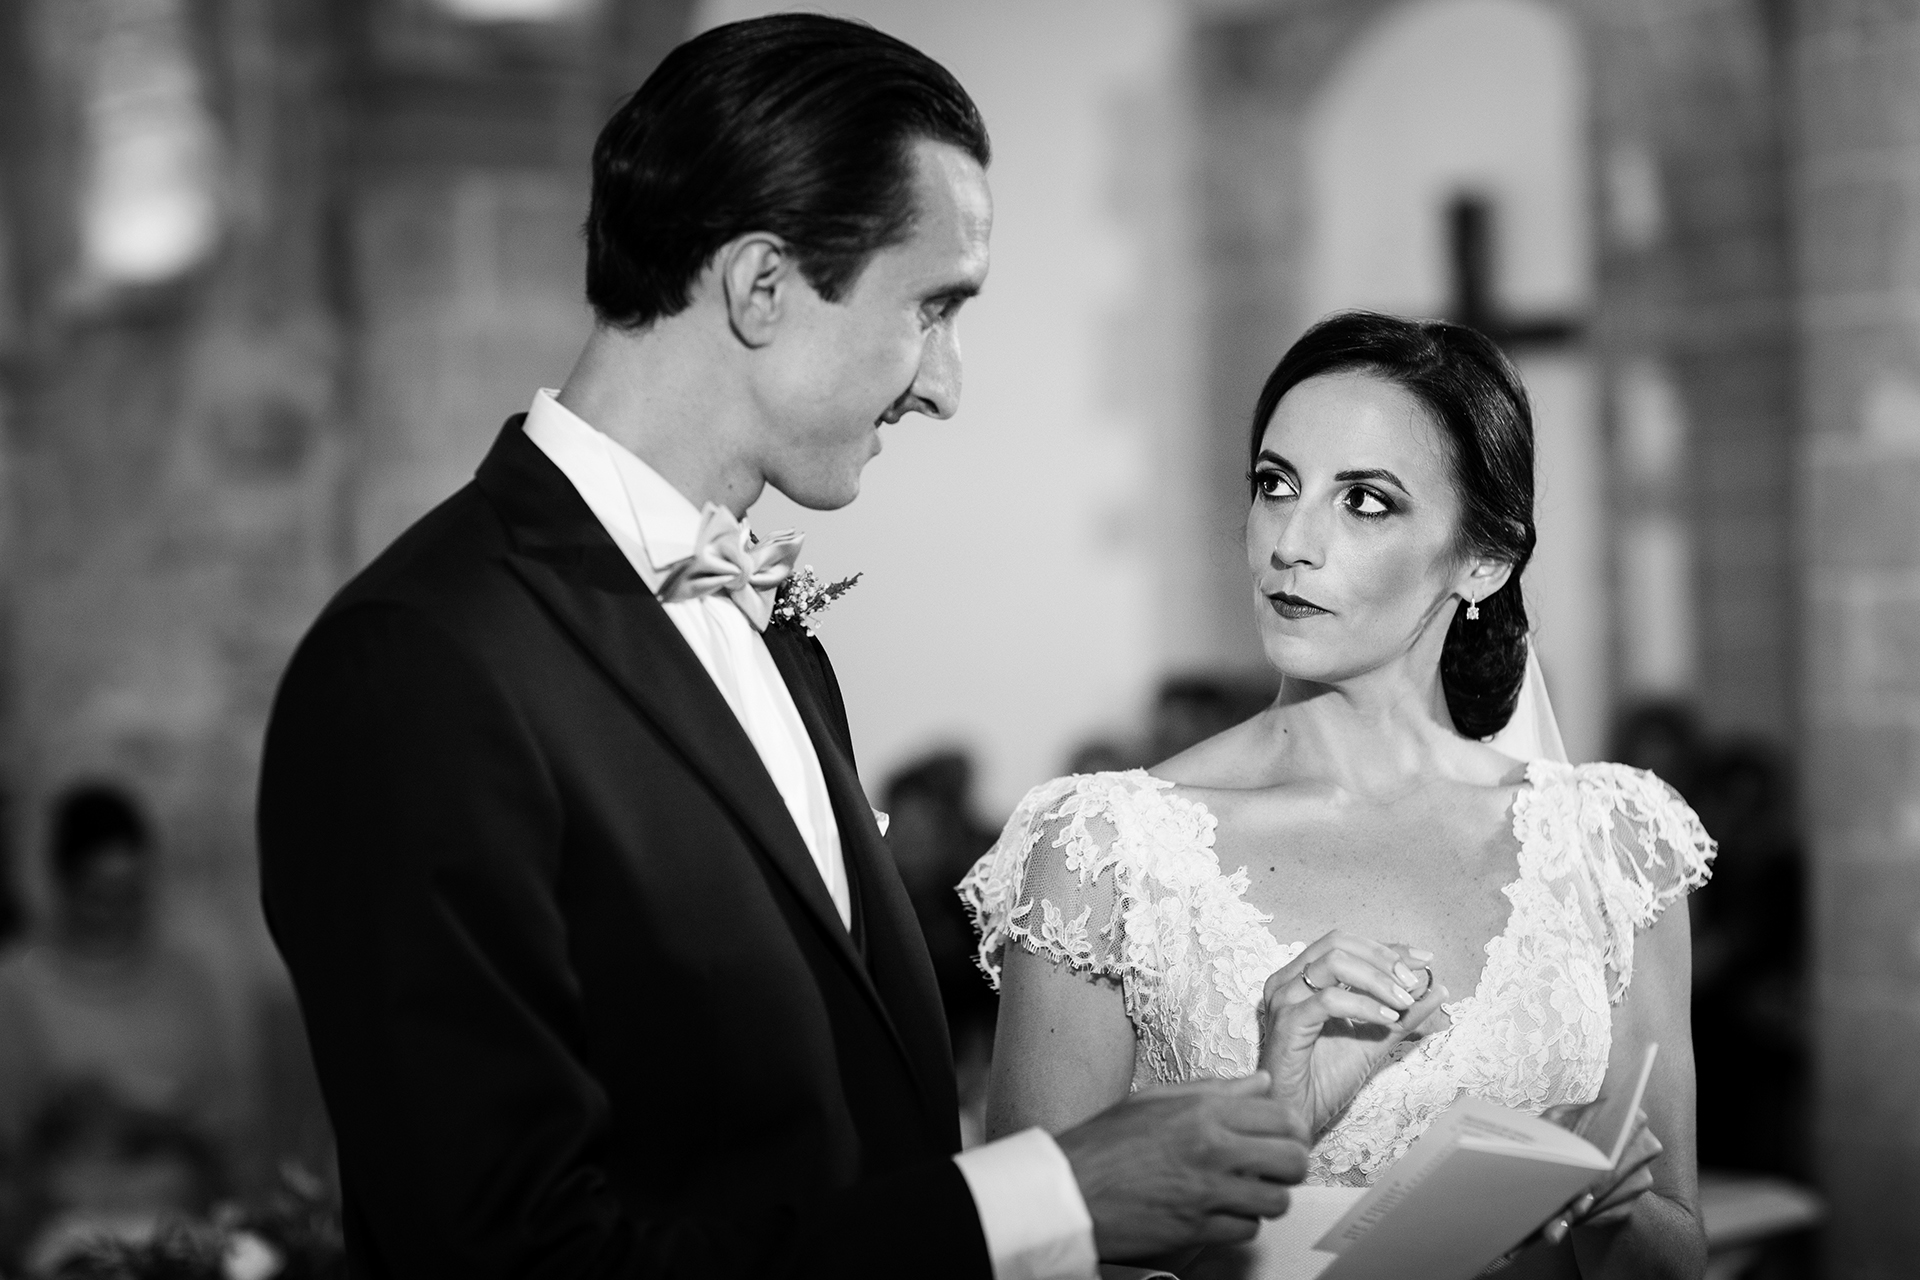 Sant'Orsola Church - Mount Erice, Sicily Wedding Image | With a determined gaze, the bride places the wedding ring on his finger